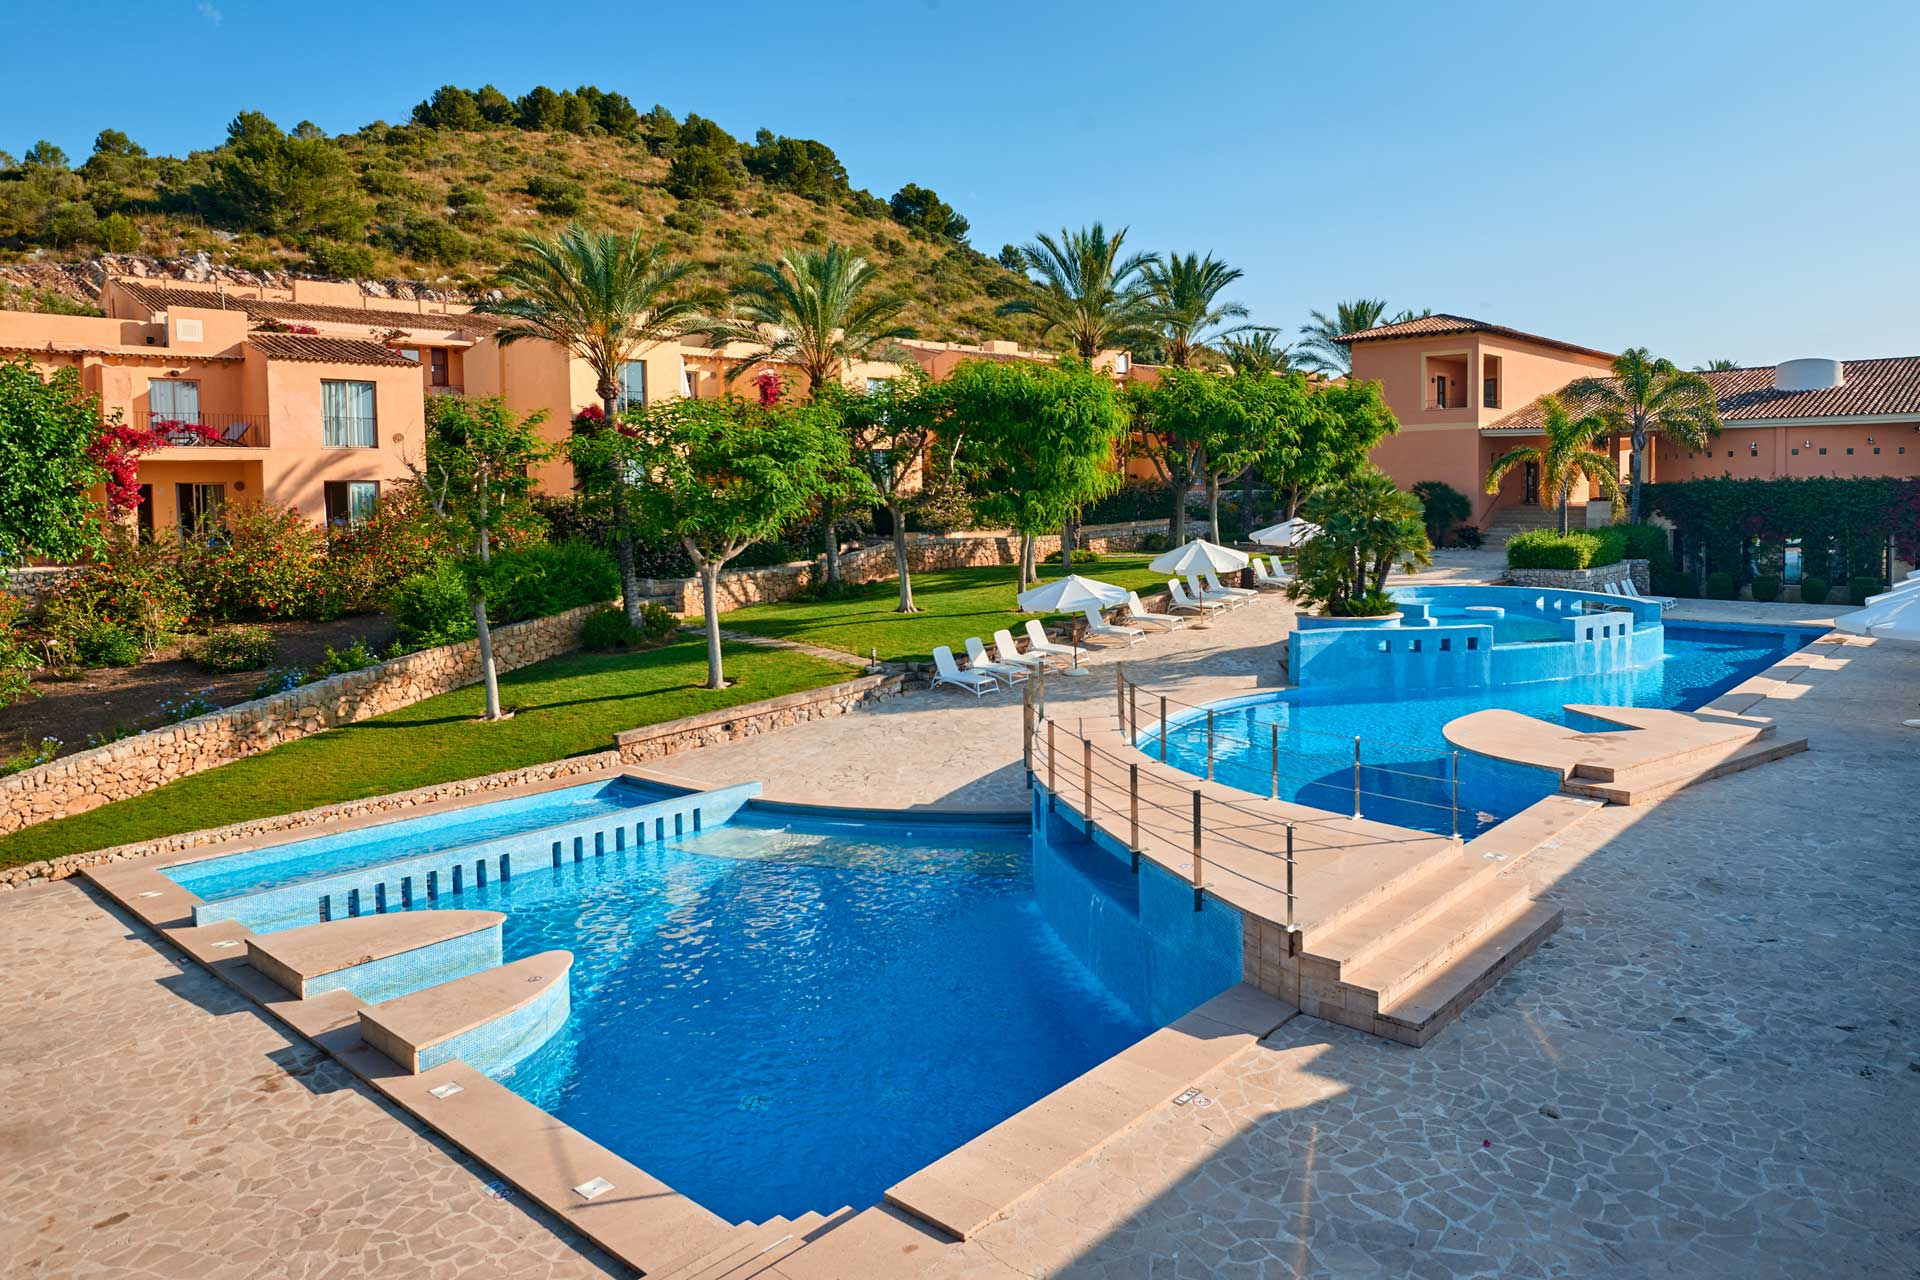 Sentido Pula Suites - Swimming pool